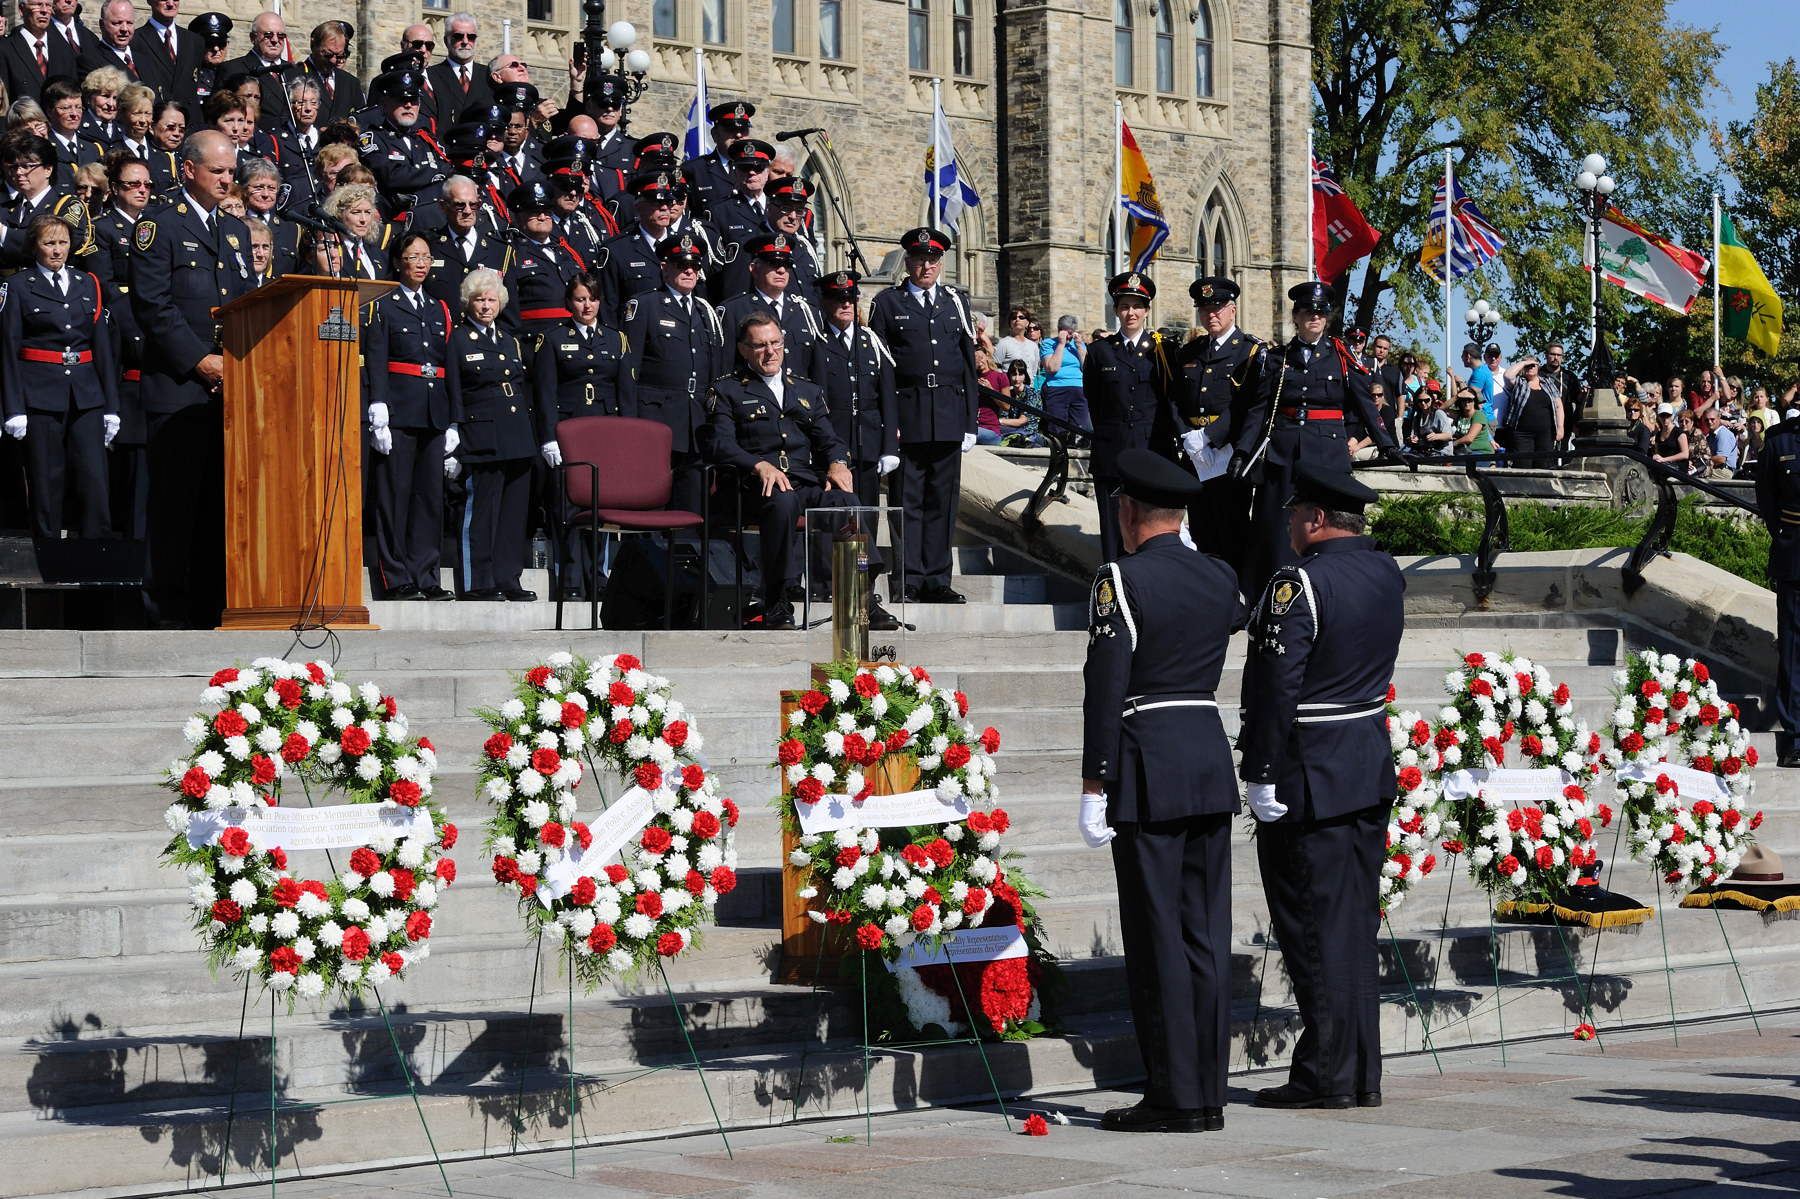 This day of remembrance provides Canadians with an opportunity to formally express appreciation for the dedication of police and peace officers who have made the ultimate sacrifice to keep our communities safe.